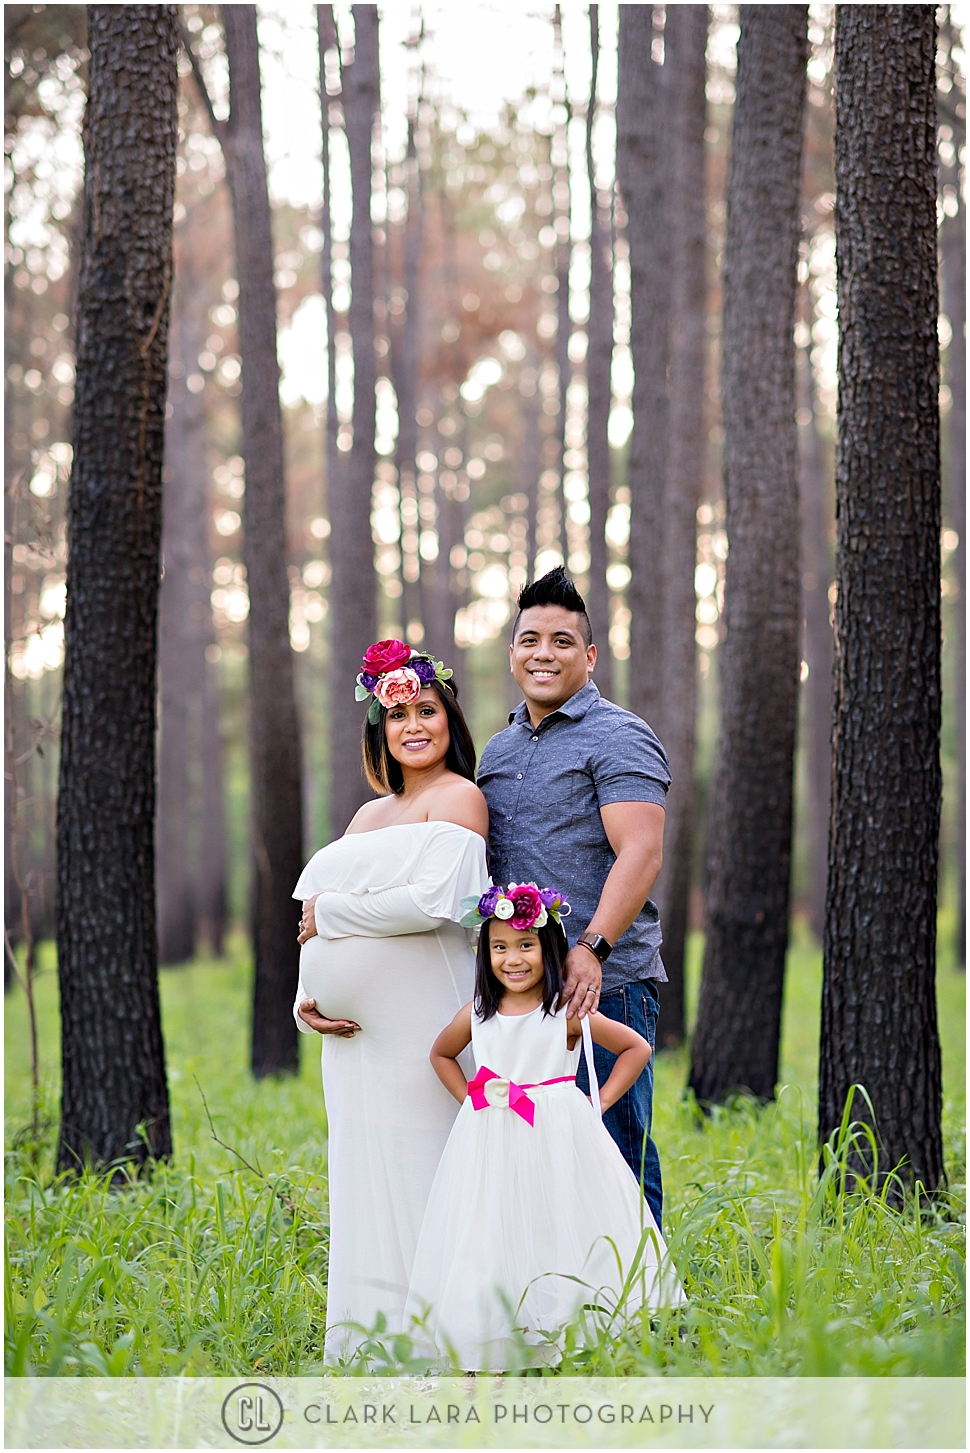 woodlands-family-maternity-photography-tua_0012.jpg